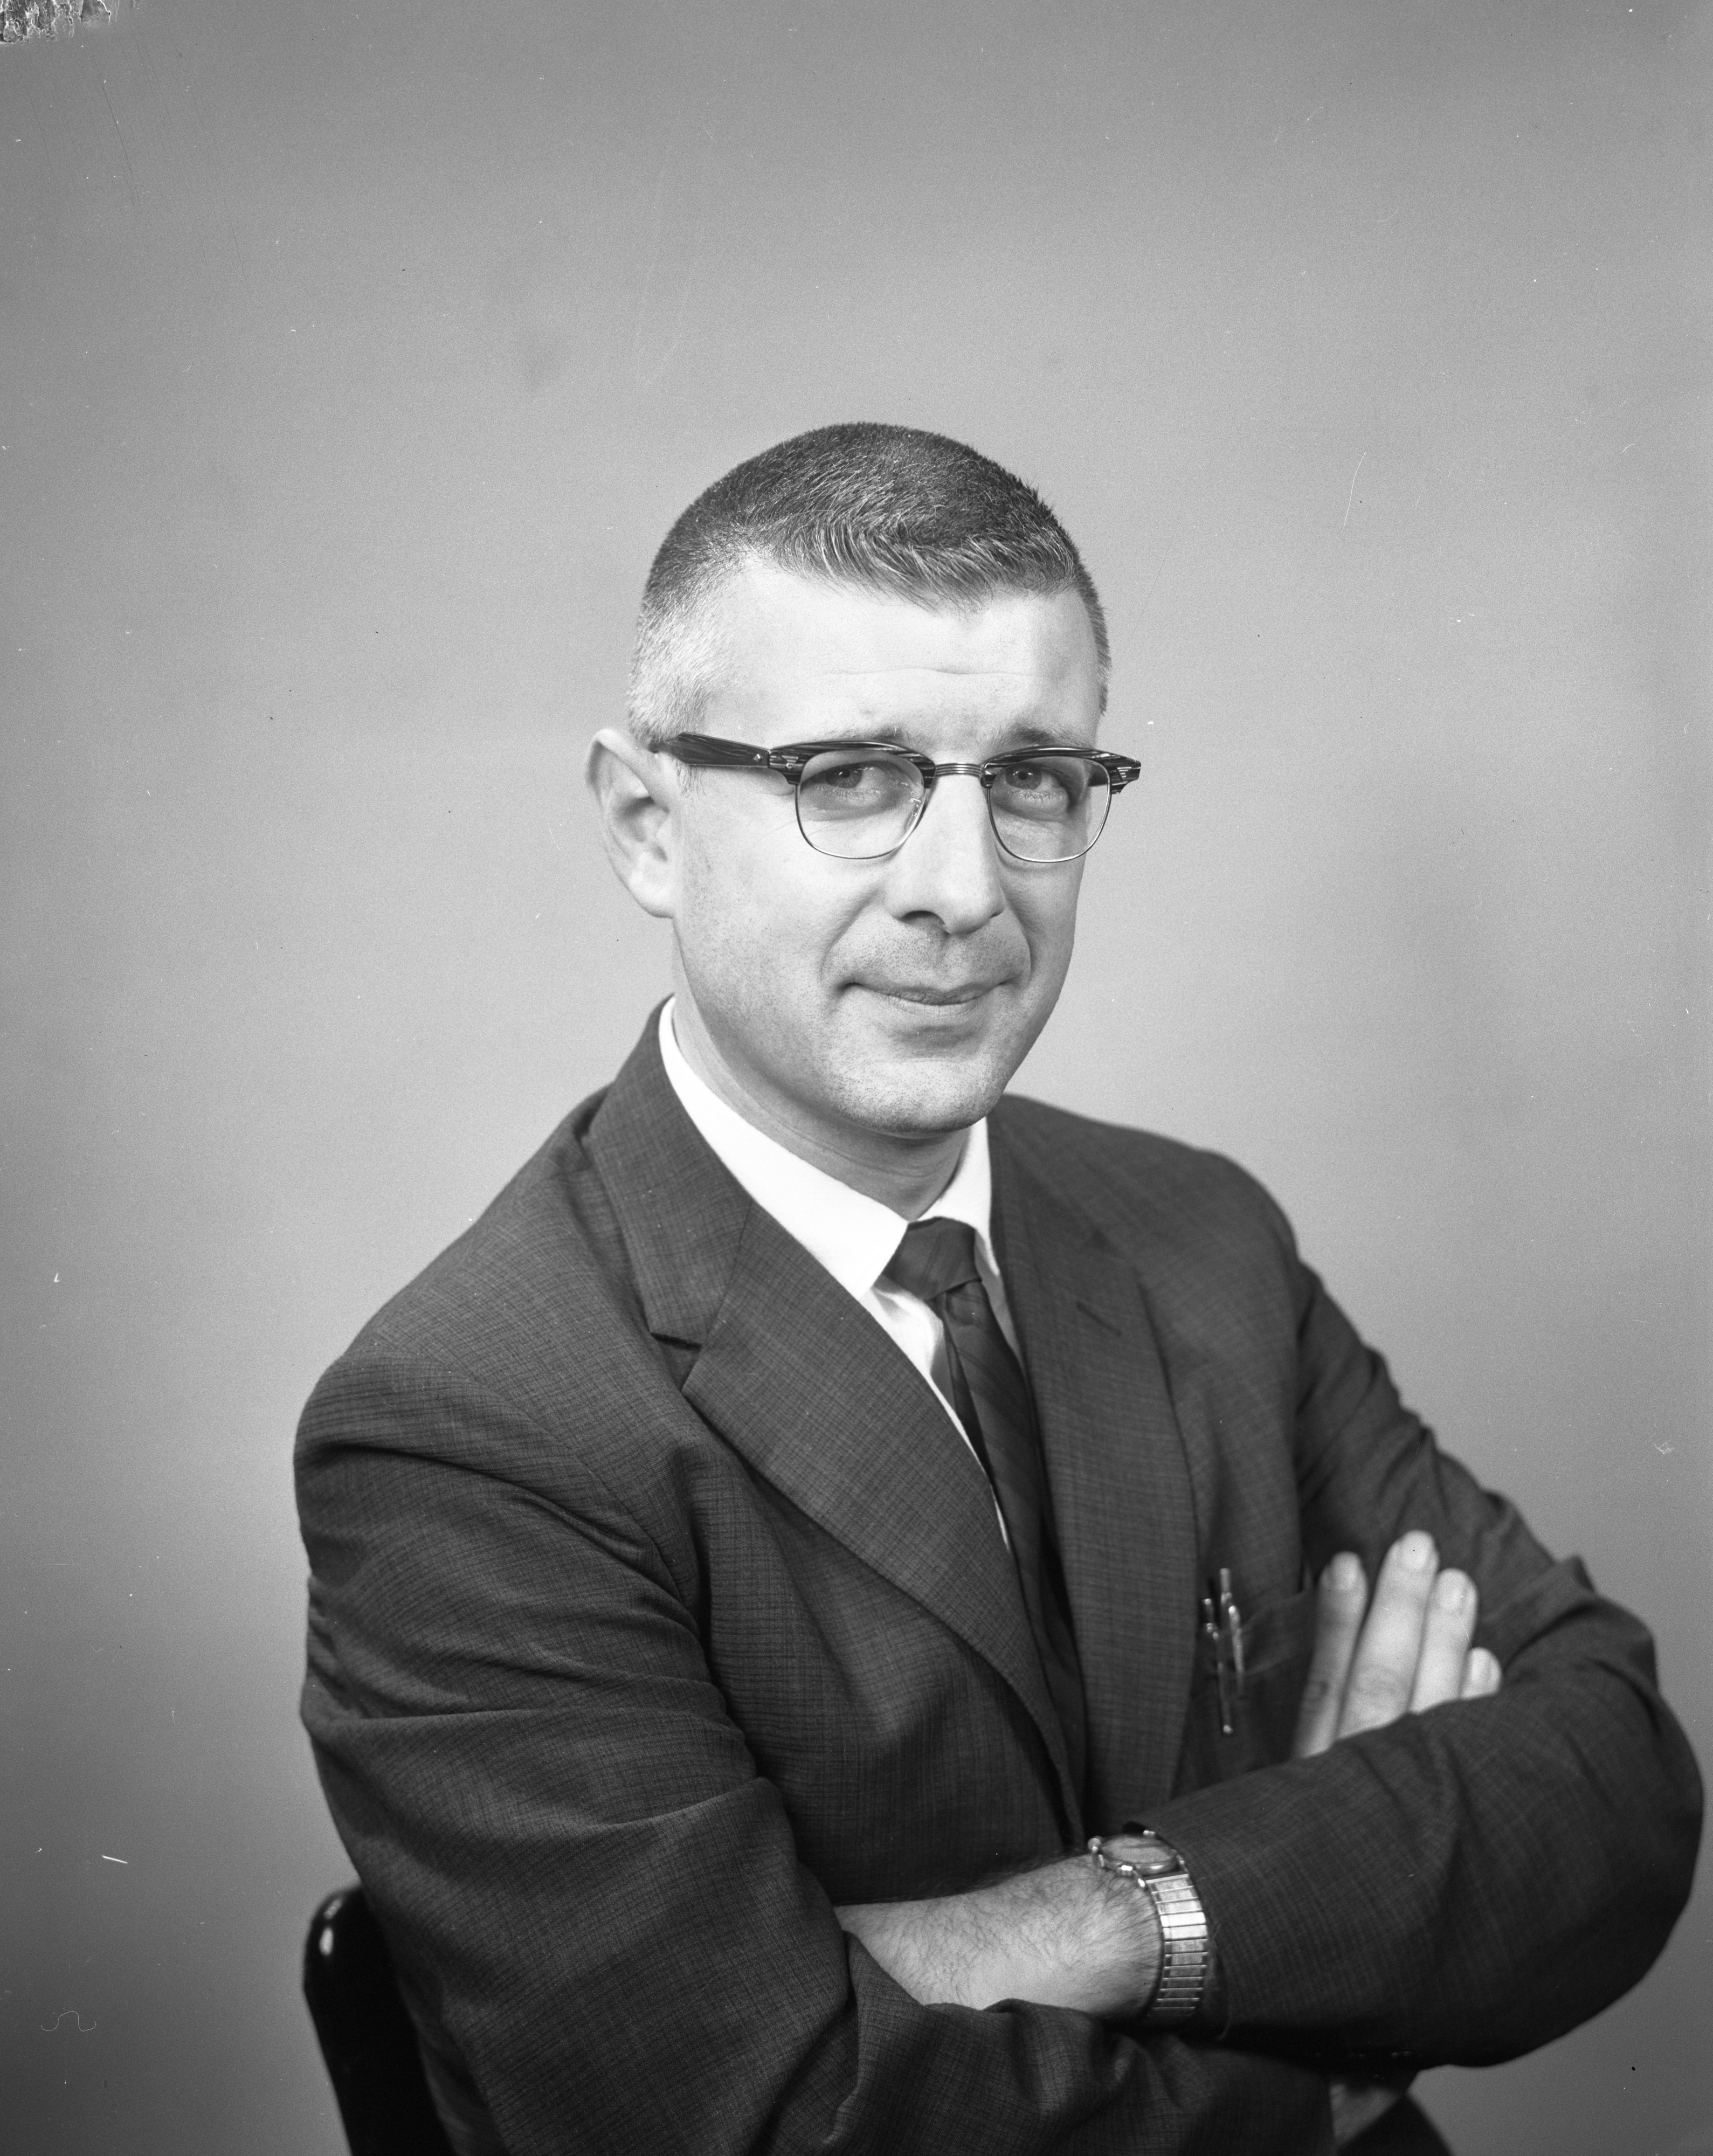 Ann Arbor Police Department Detective Sgt. Richard G. Hill, July 1962 image